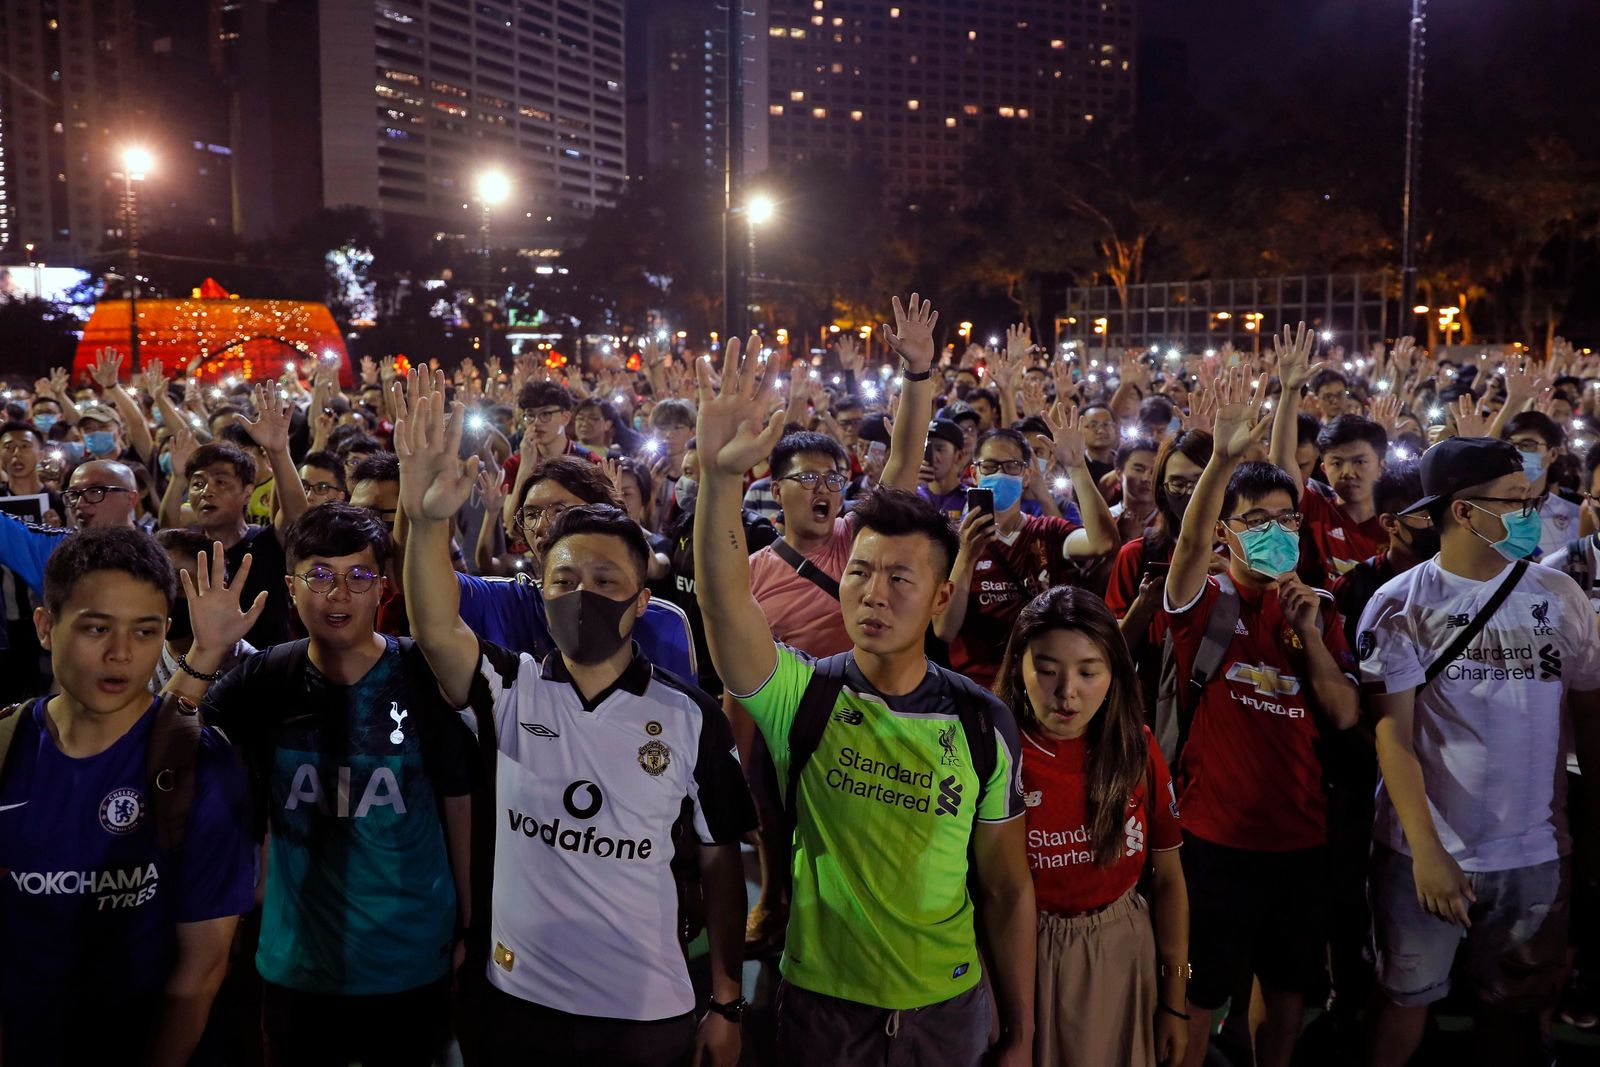 Pro-democracy football fans gather to form a human chain as they sing songs at